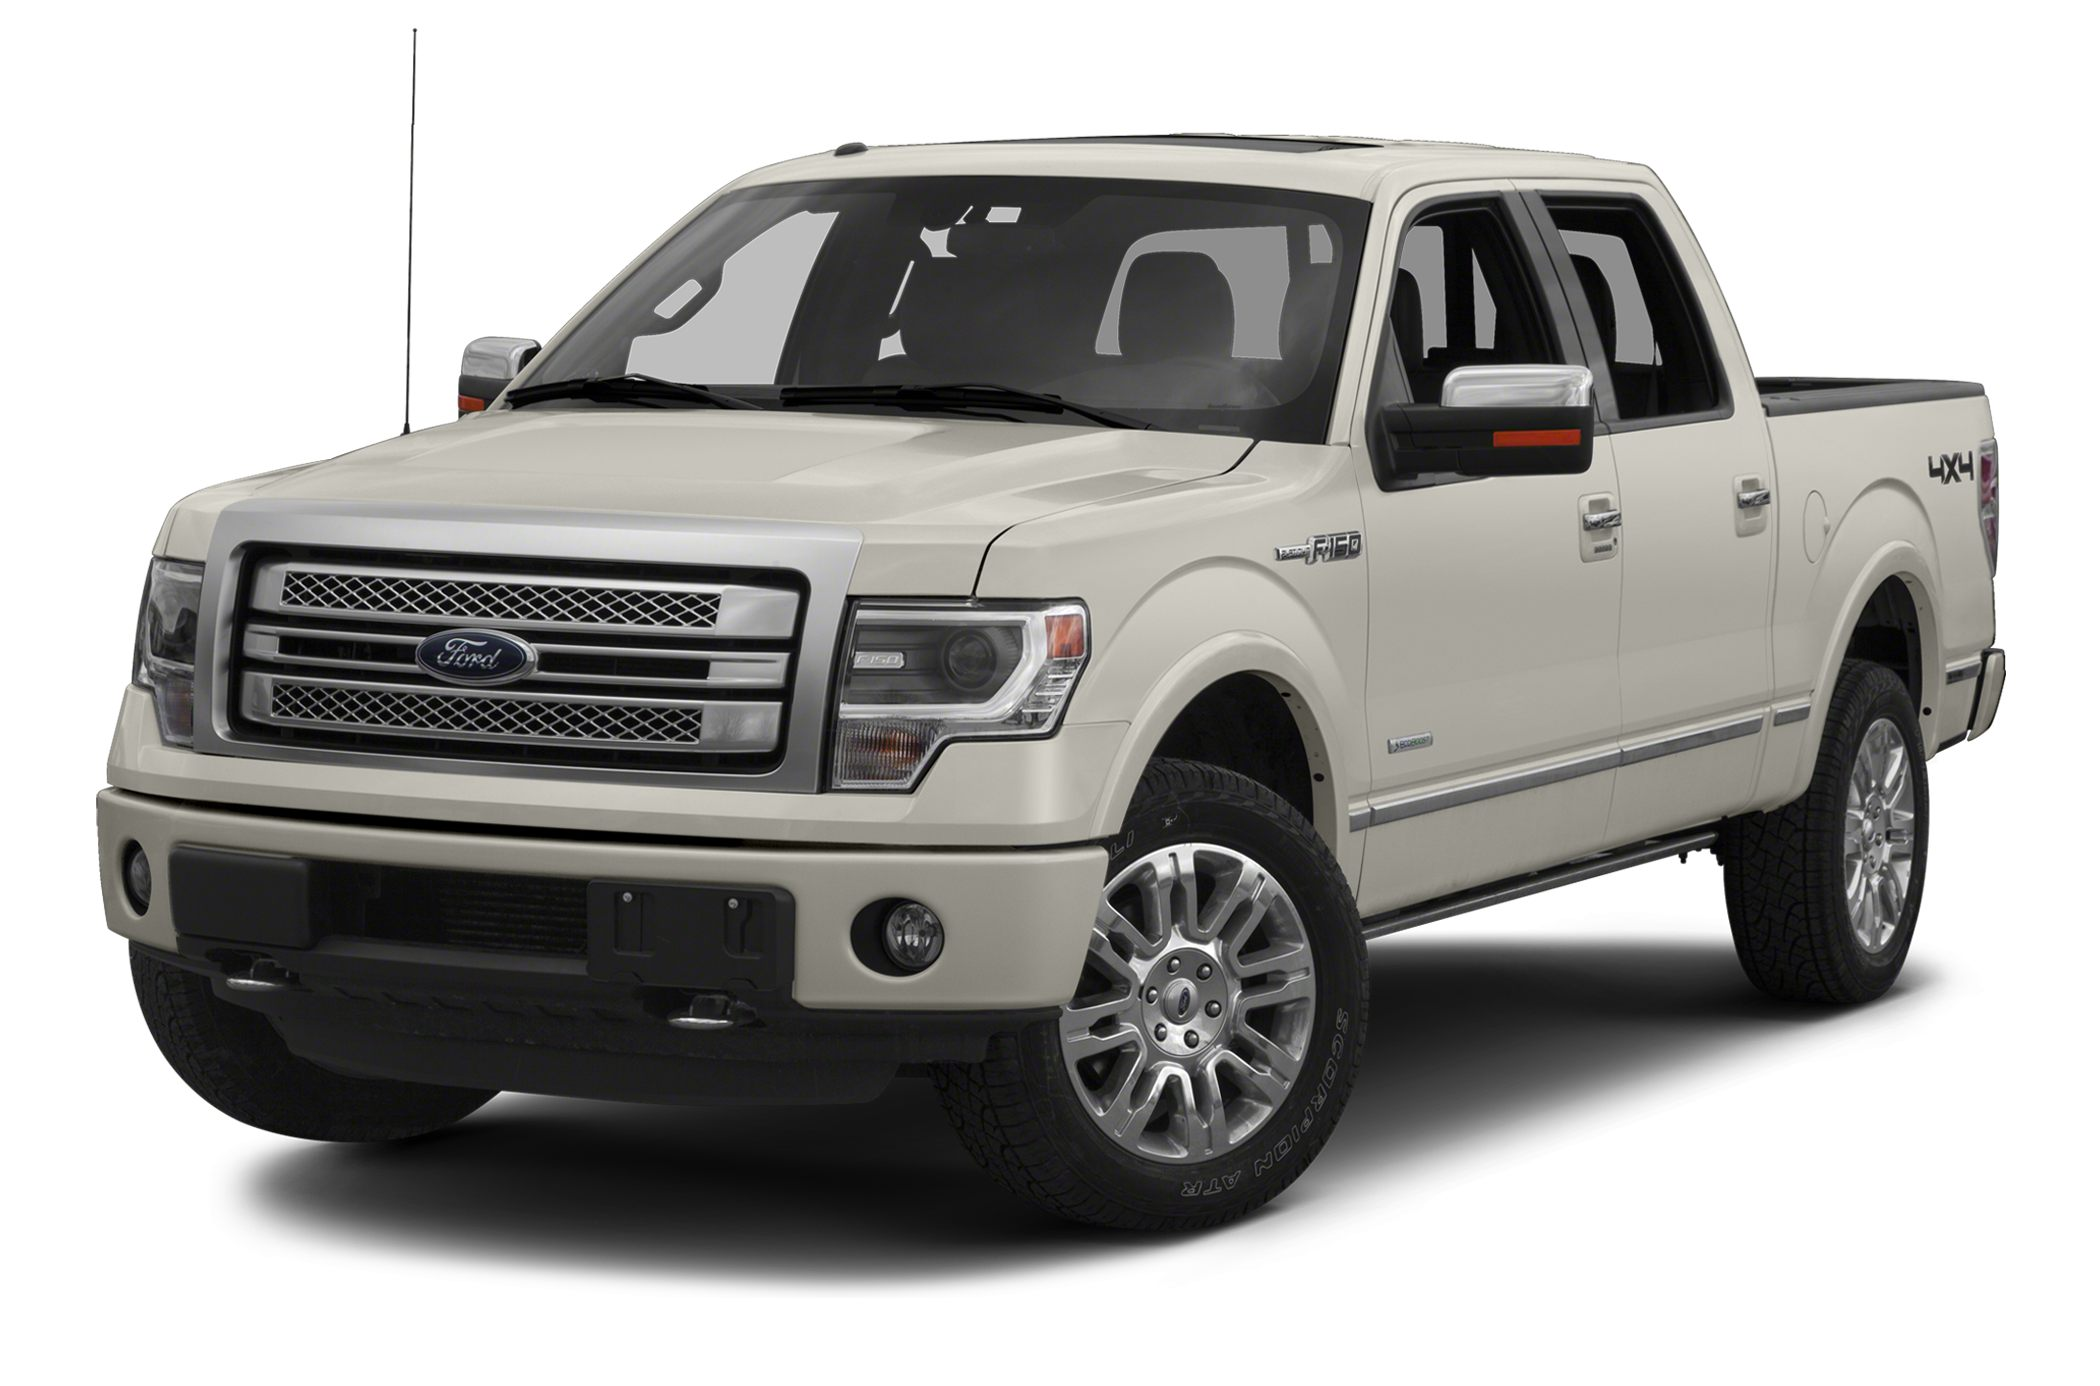 2013 Ford F150 Platinum Crew Cab Pickup for sale in Kenesaw for $41,995 with 26,665 miles